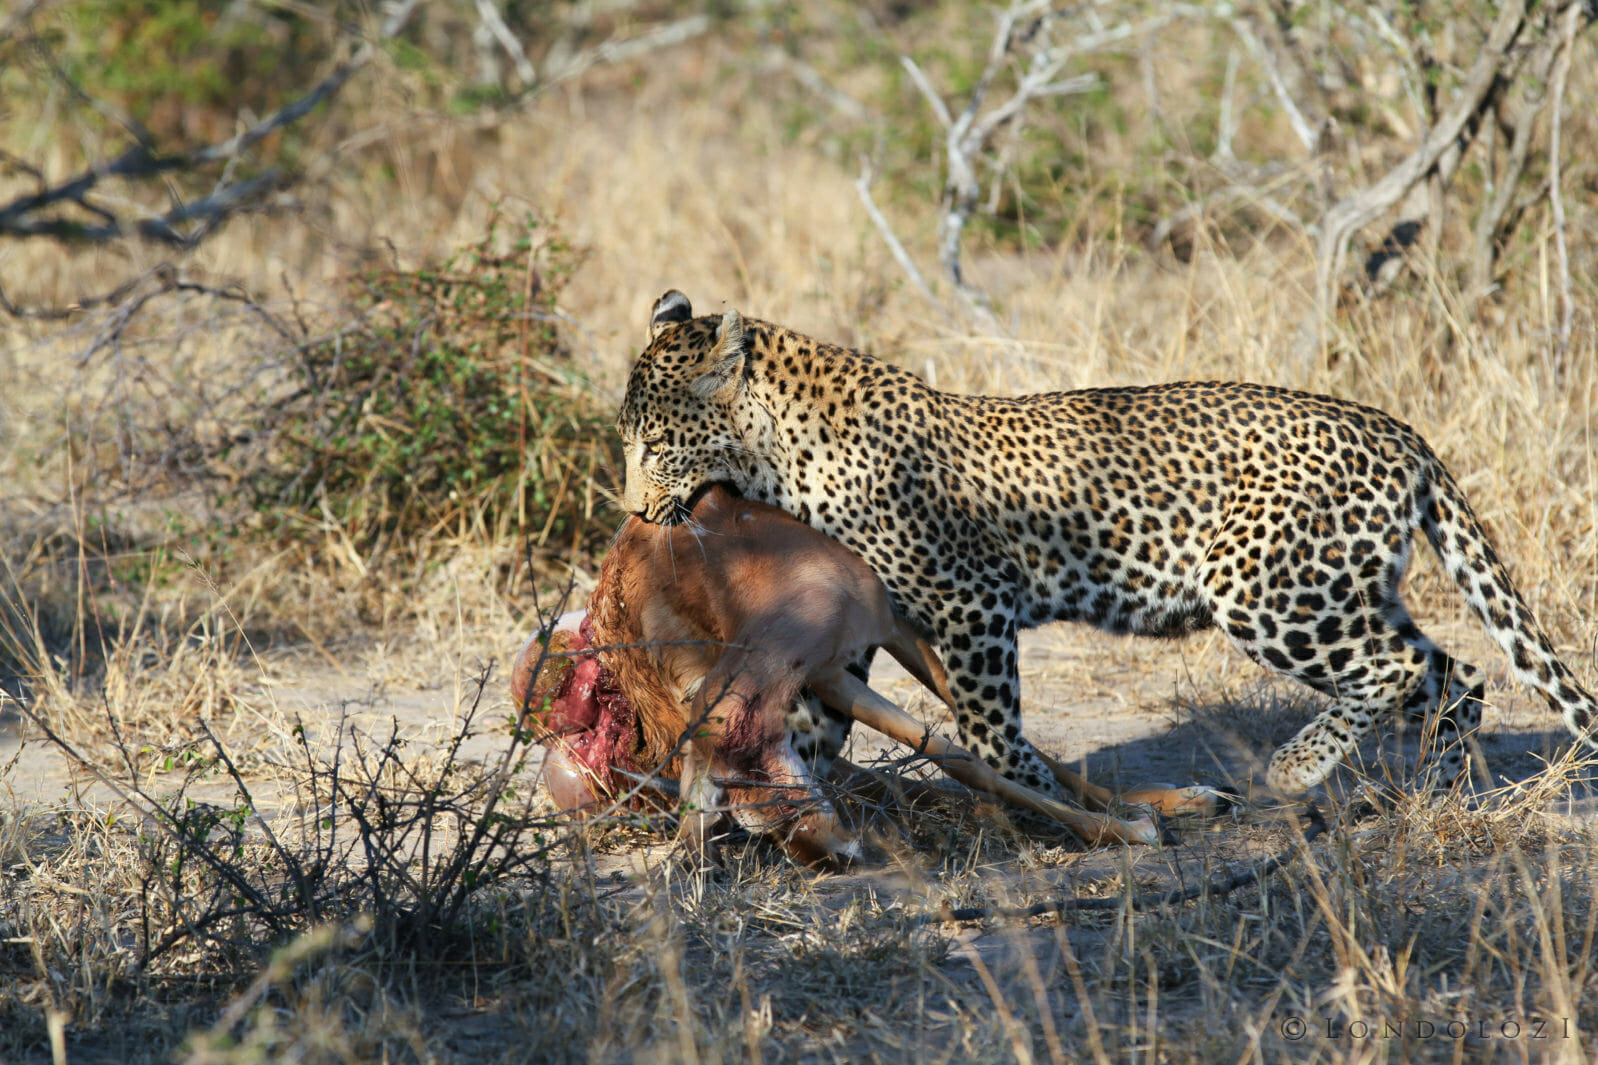 Just Another Morning For a Mother Leopard Raising a Cub